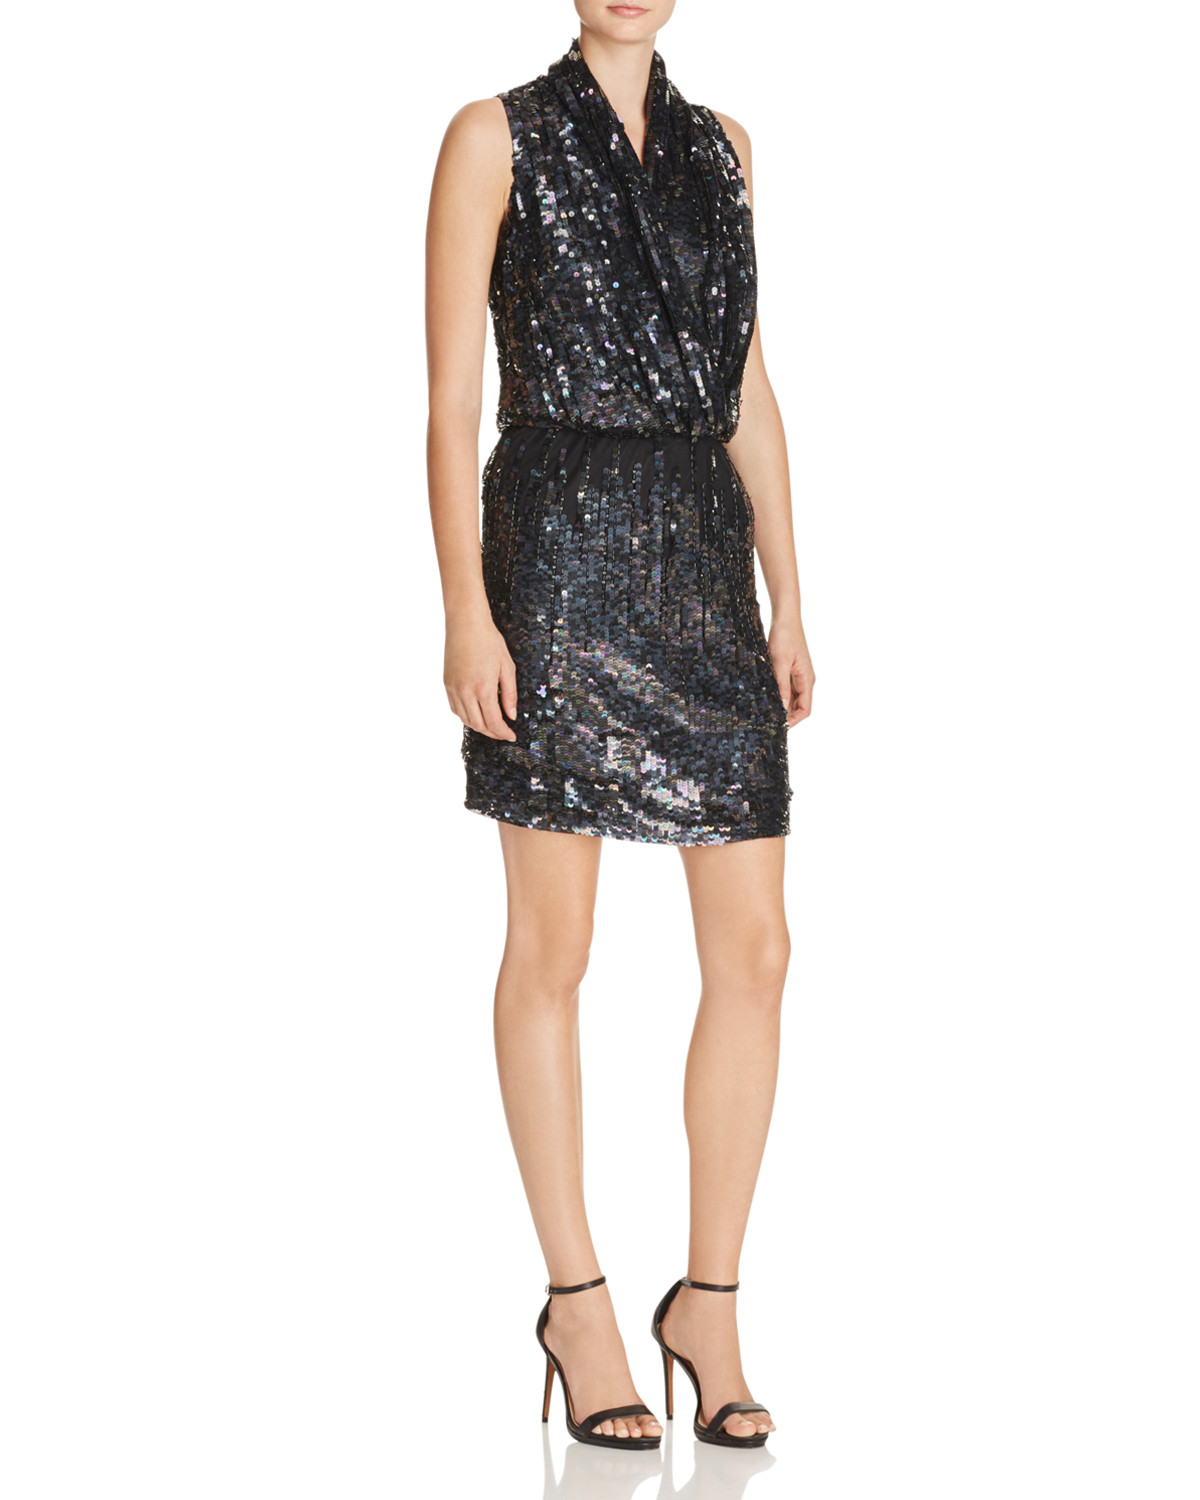 image: Parker Lysette Embellished Silk Dress image: bloomingdale's and bloomingdales.com